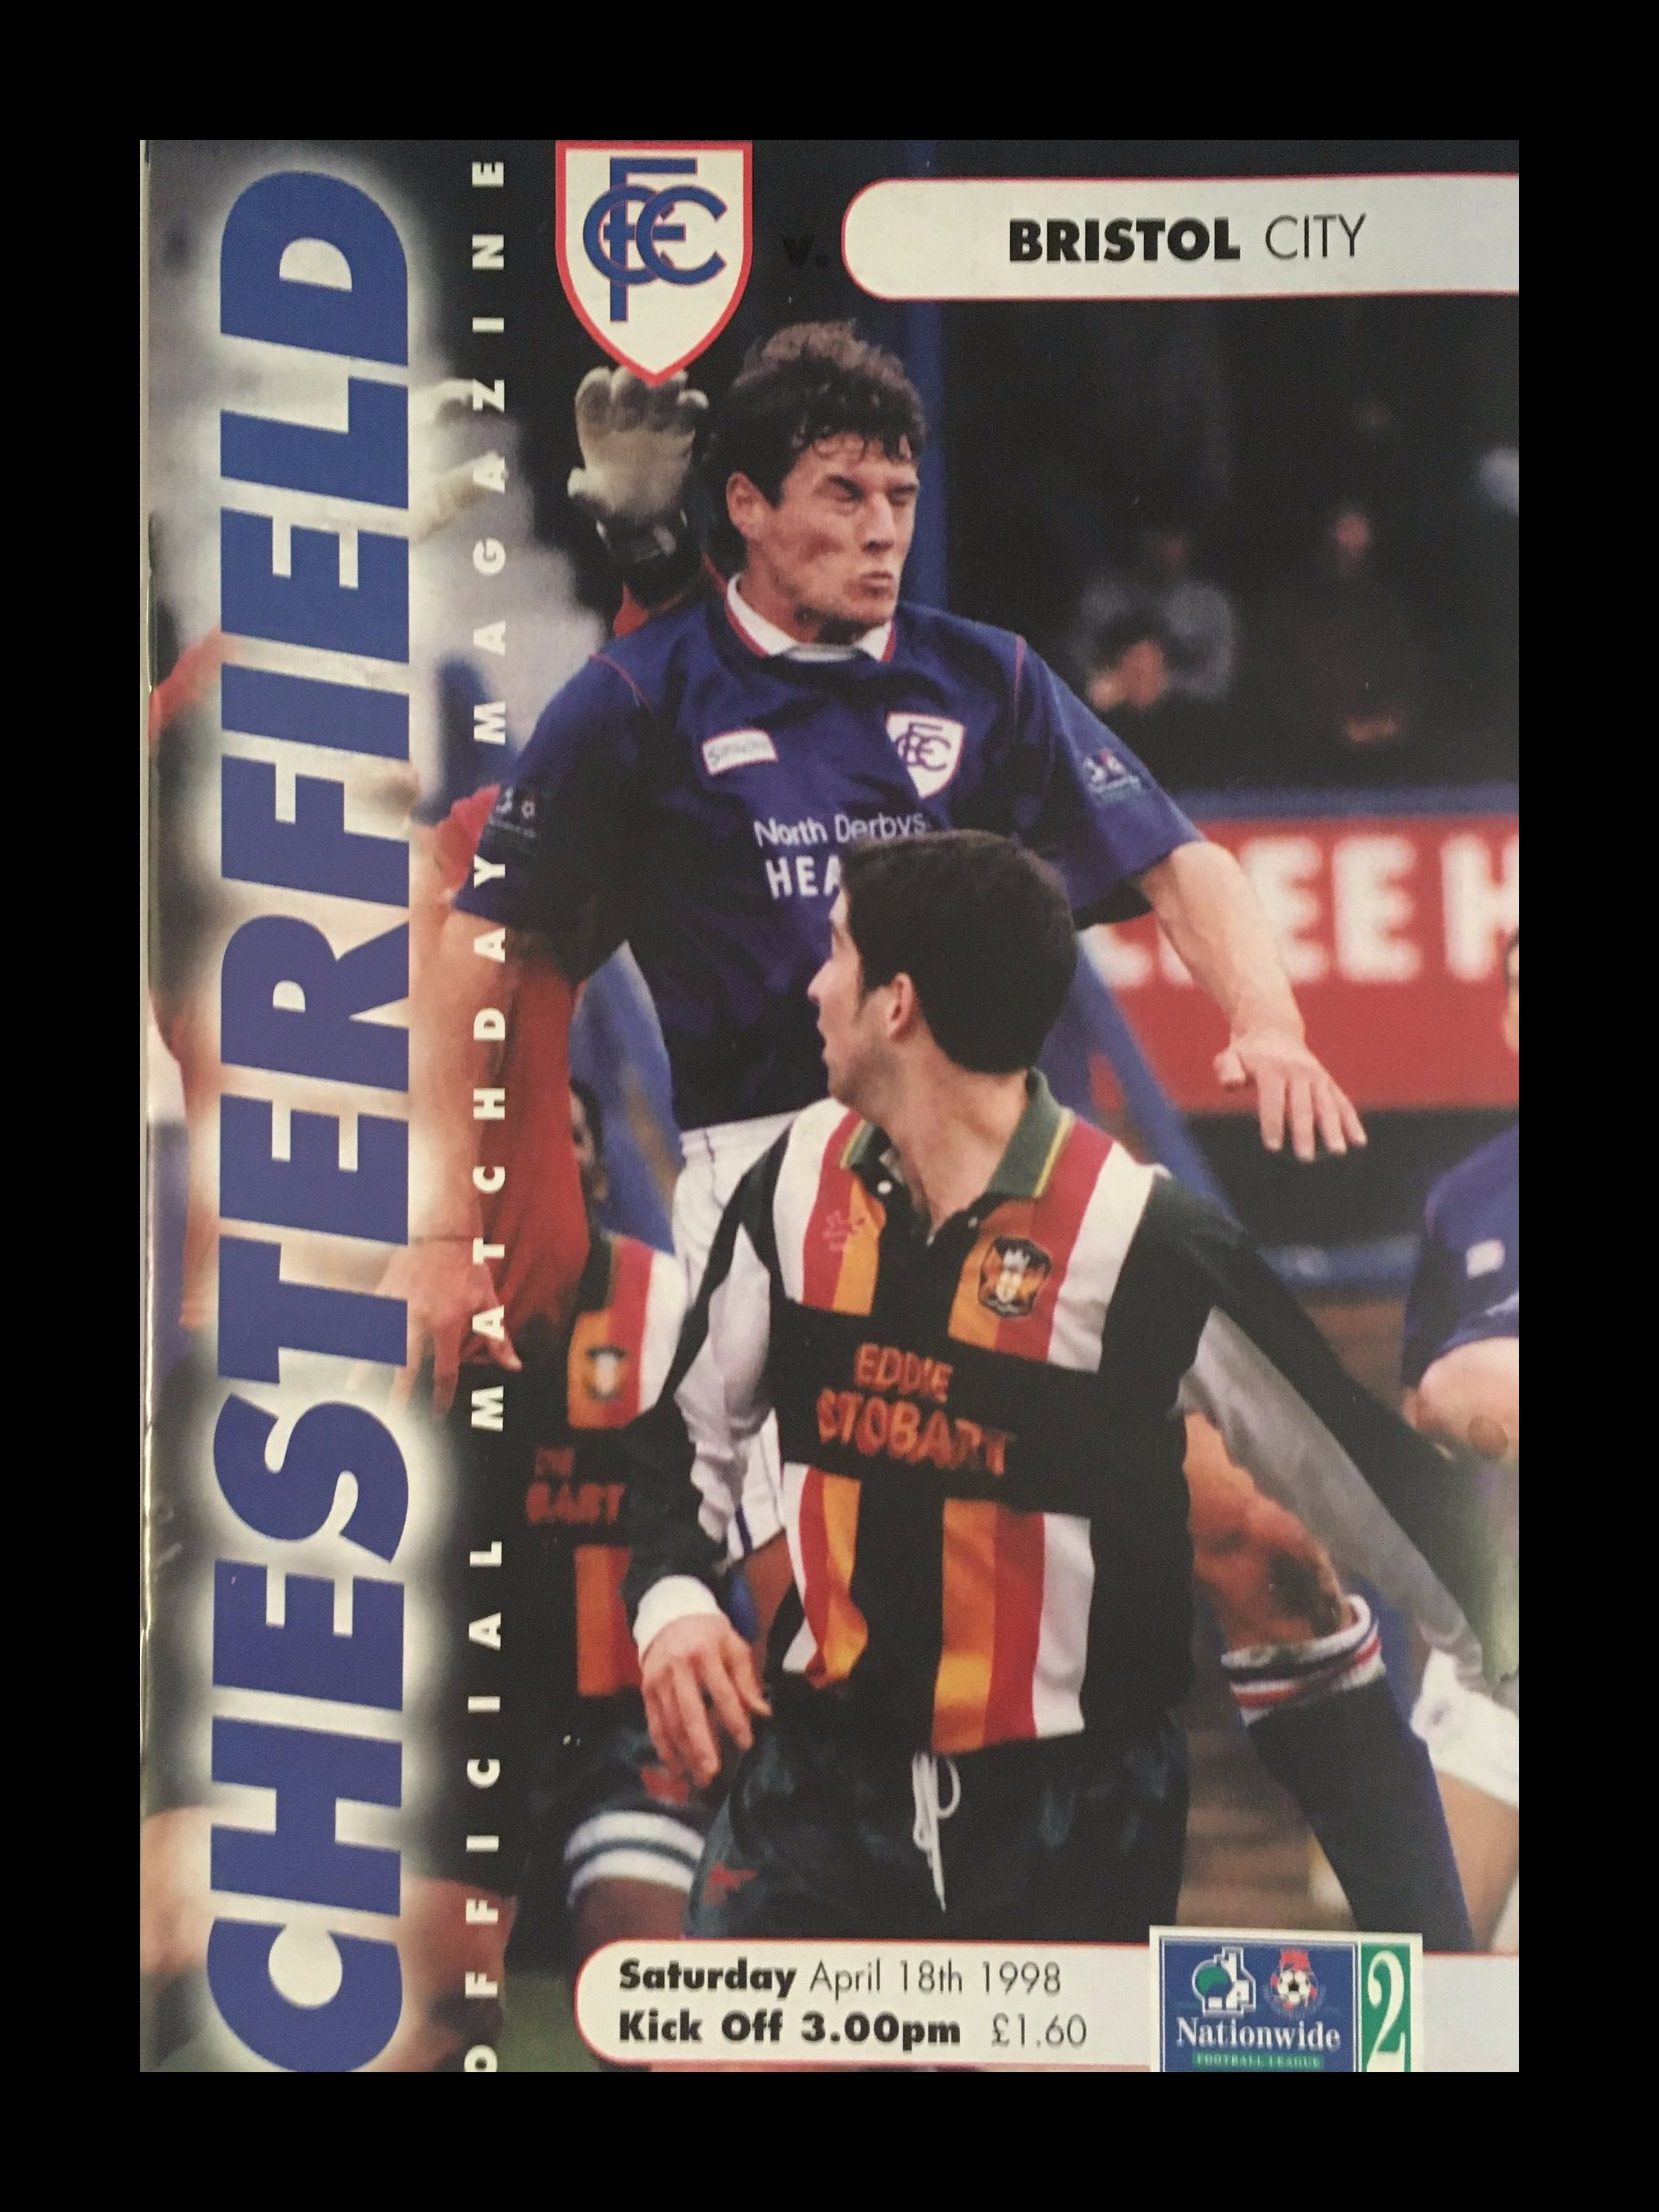 Chesterfield v Bristol City 18-04-1998 Programme